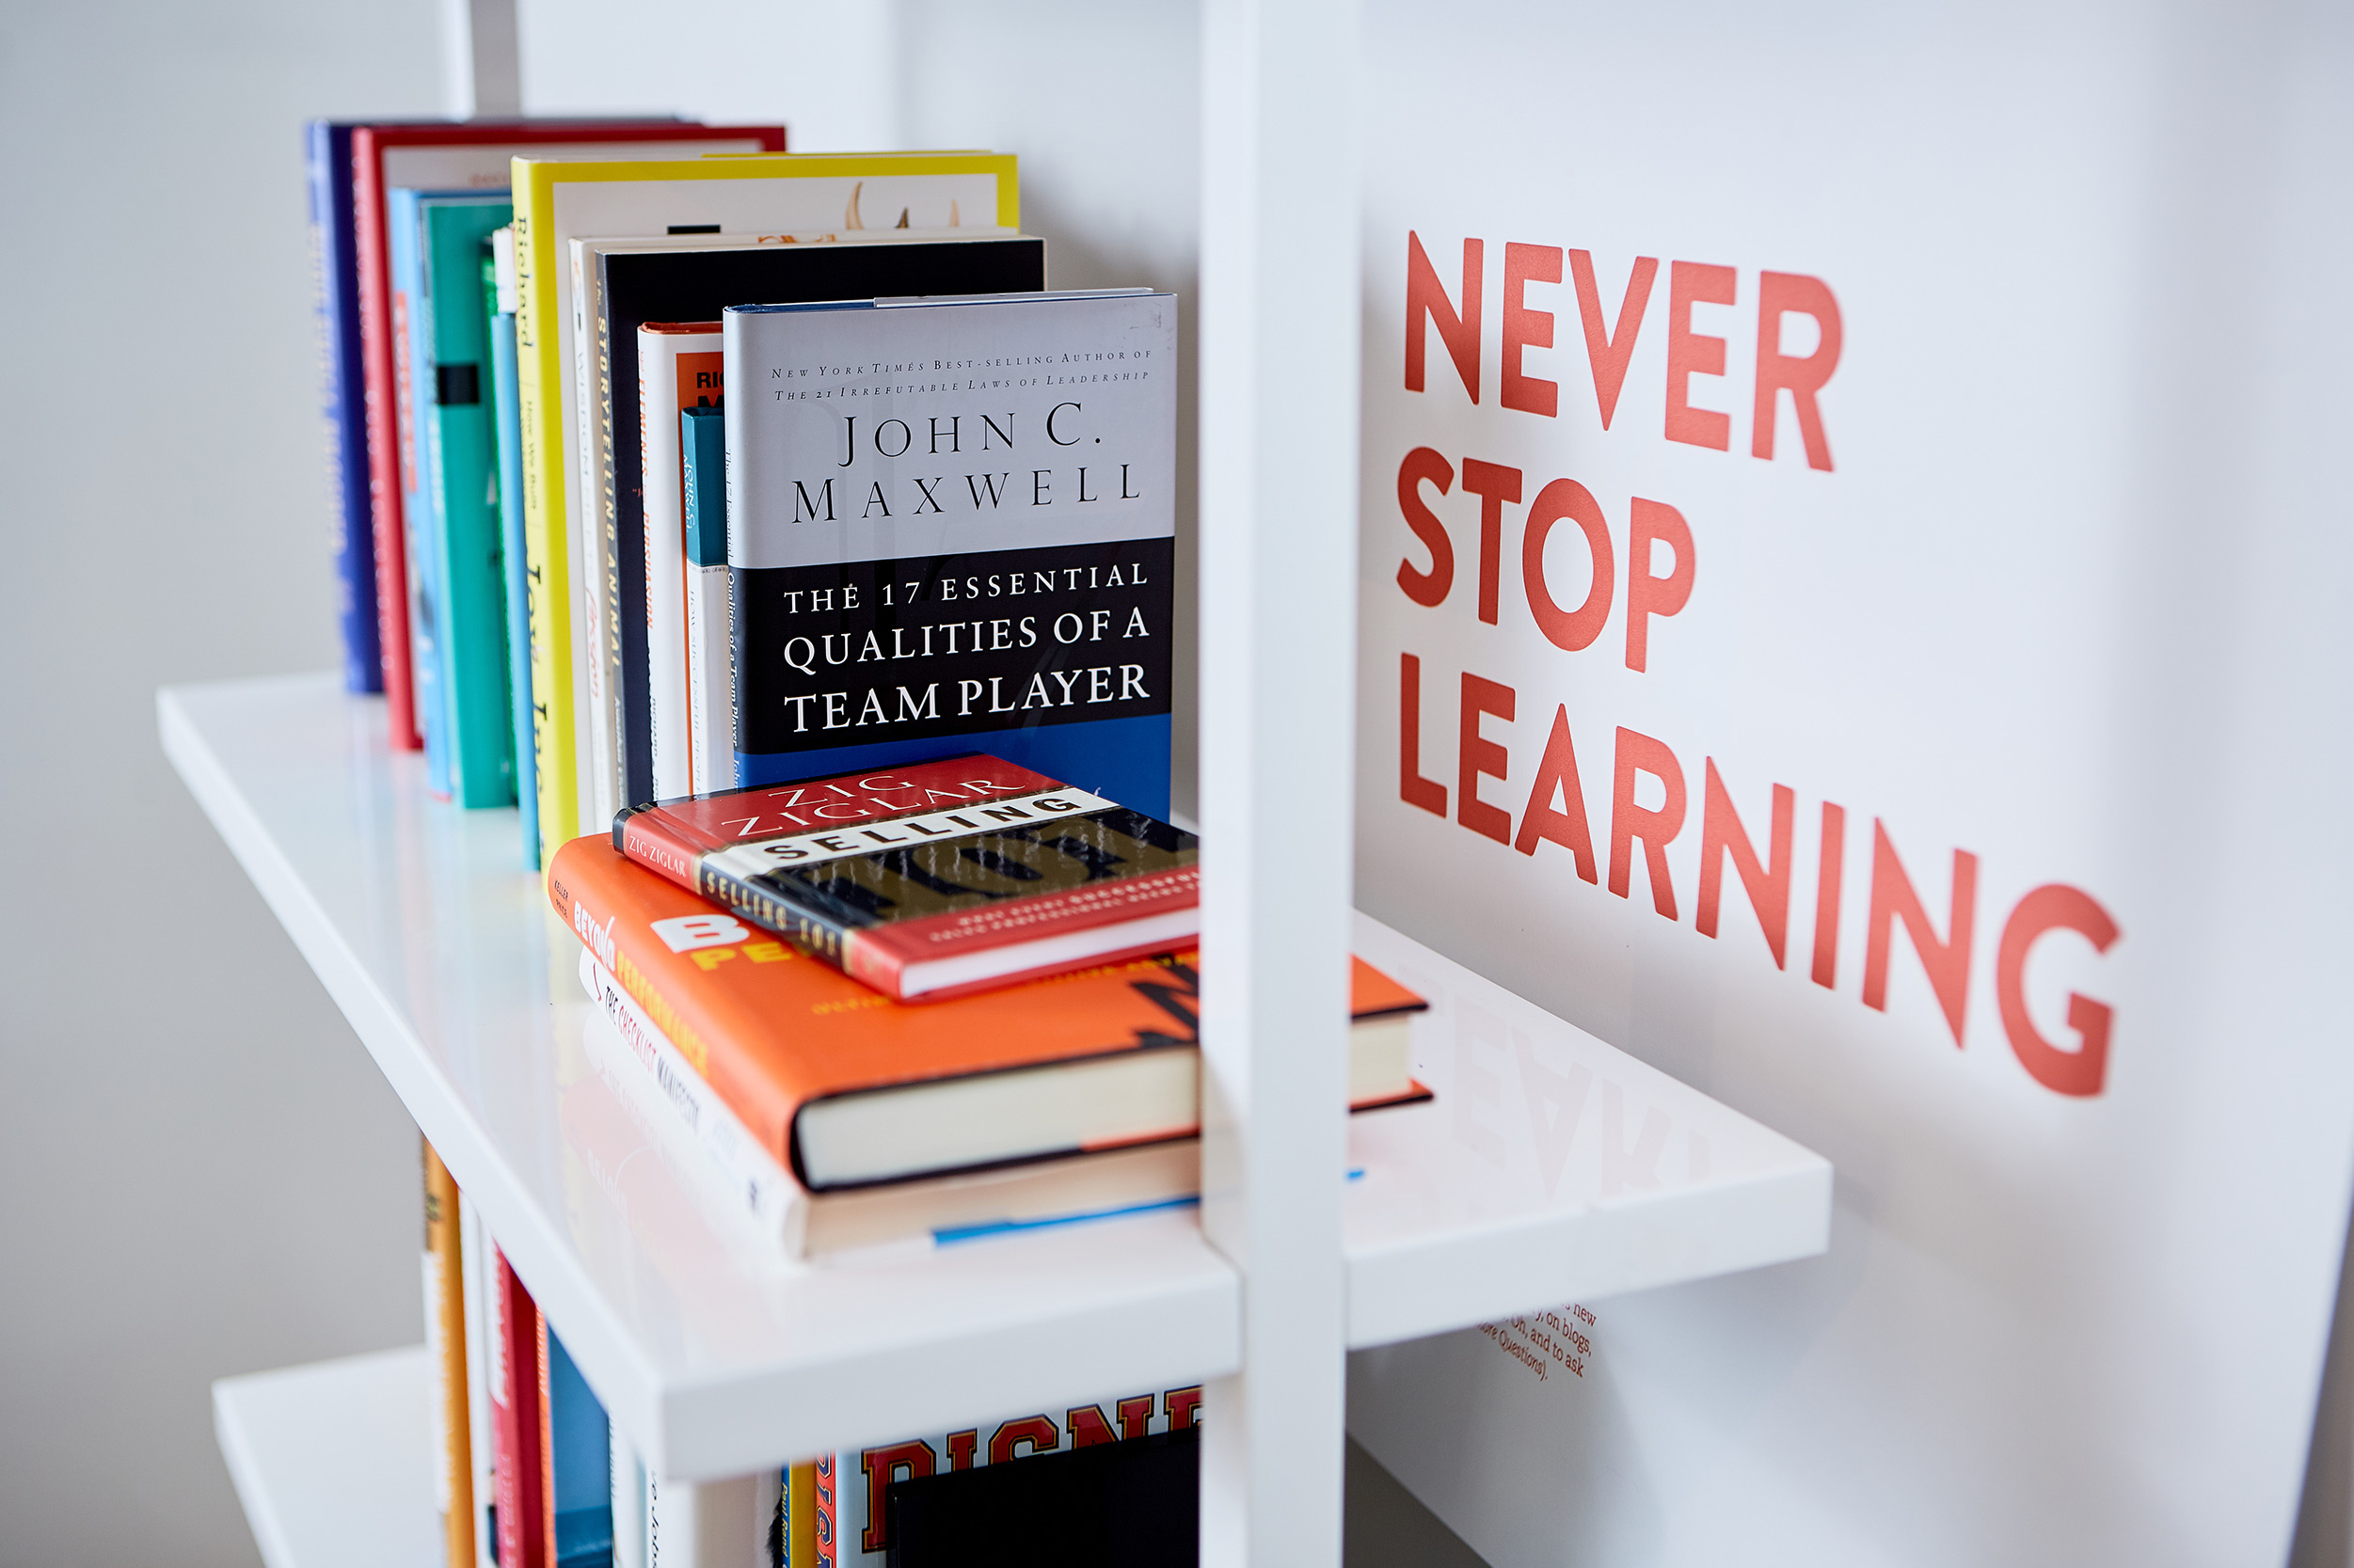 Photo of books on a shelf with a nearby poster that reads Never Stop Learning